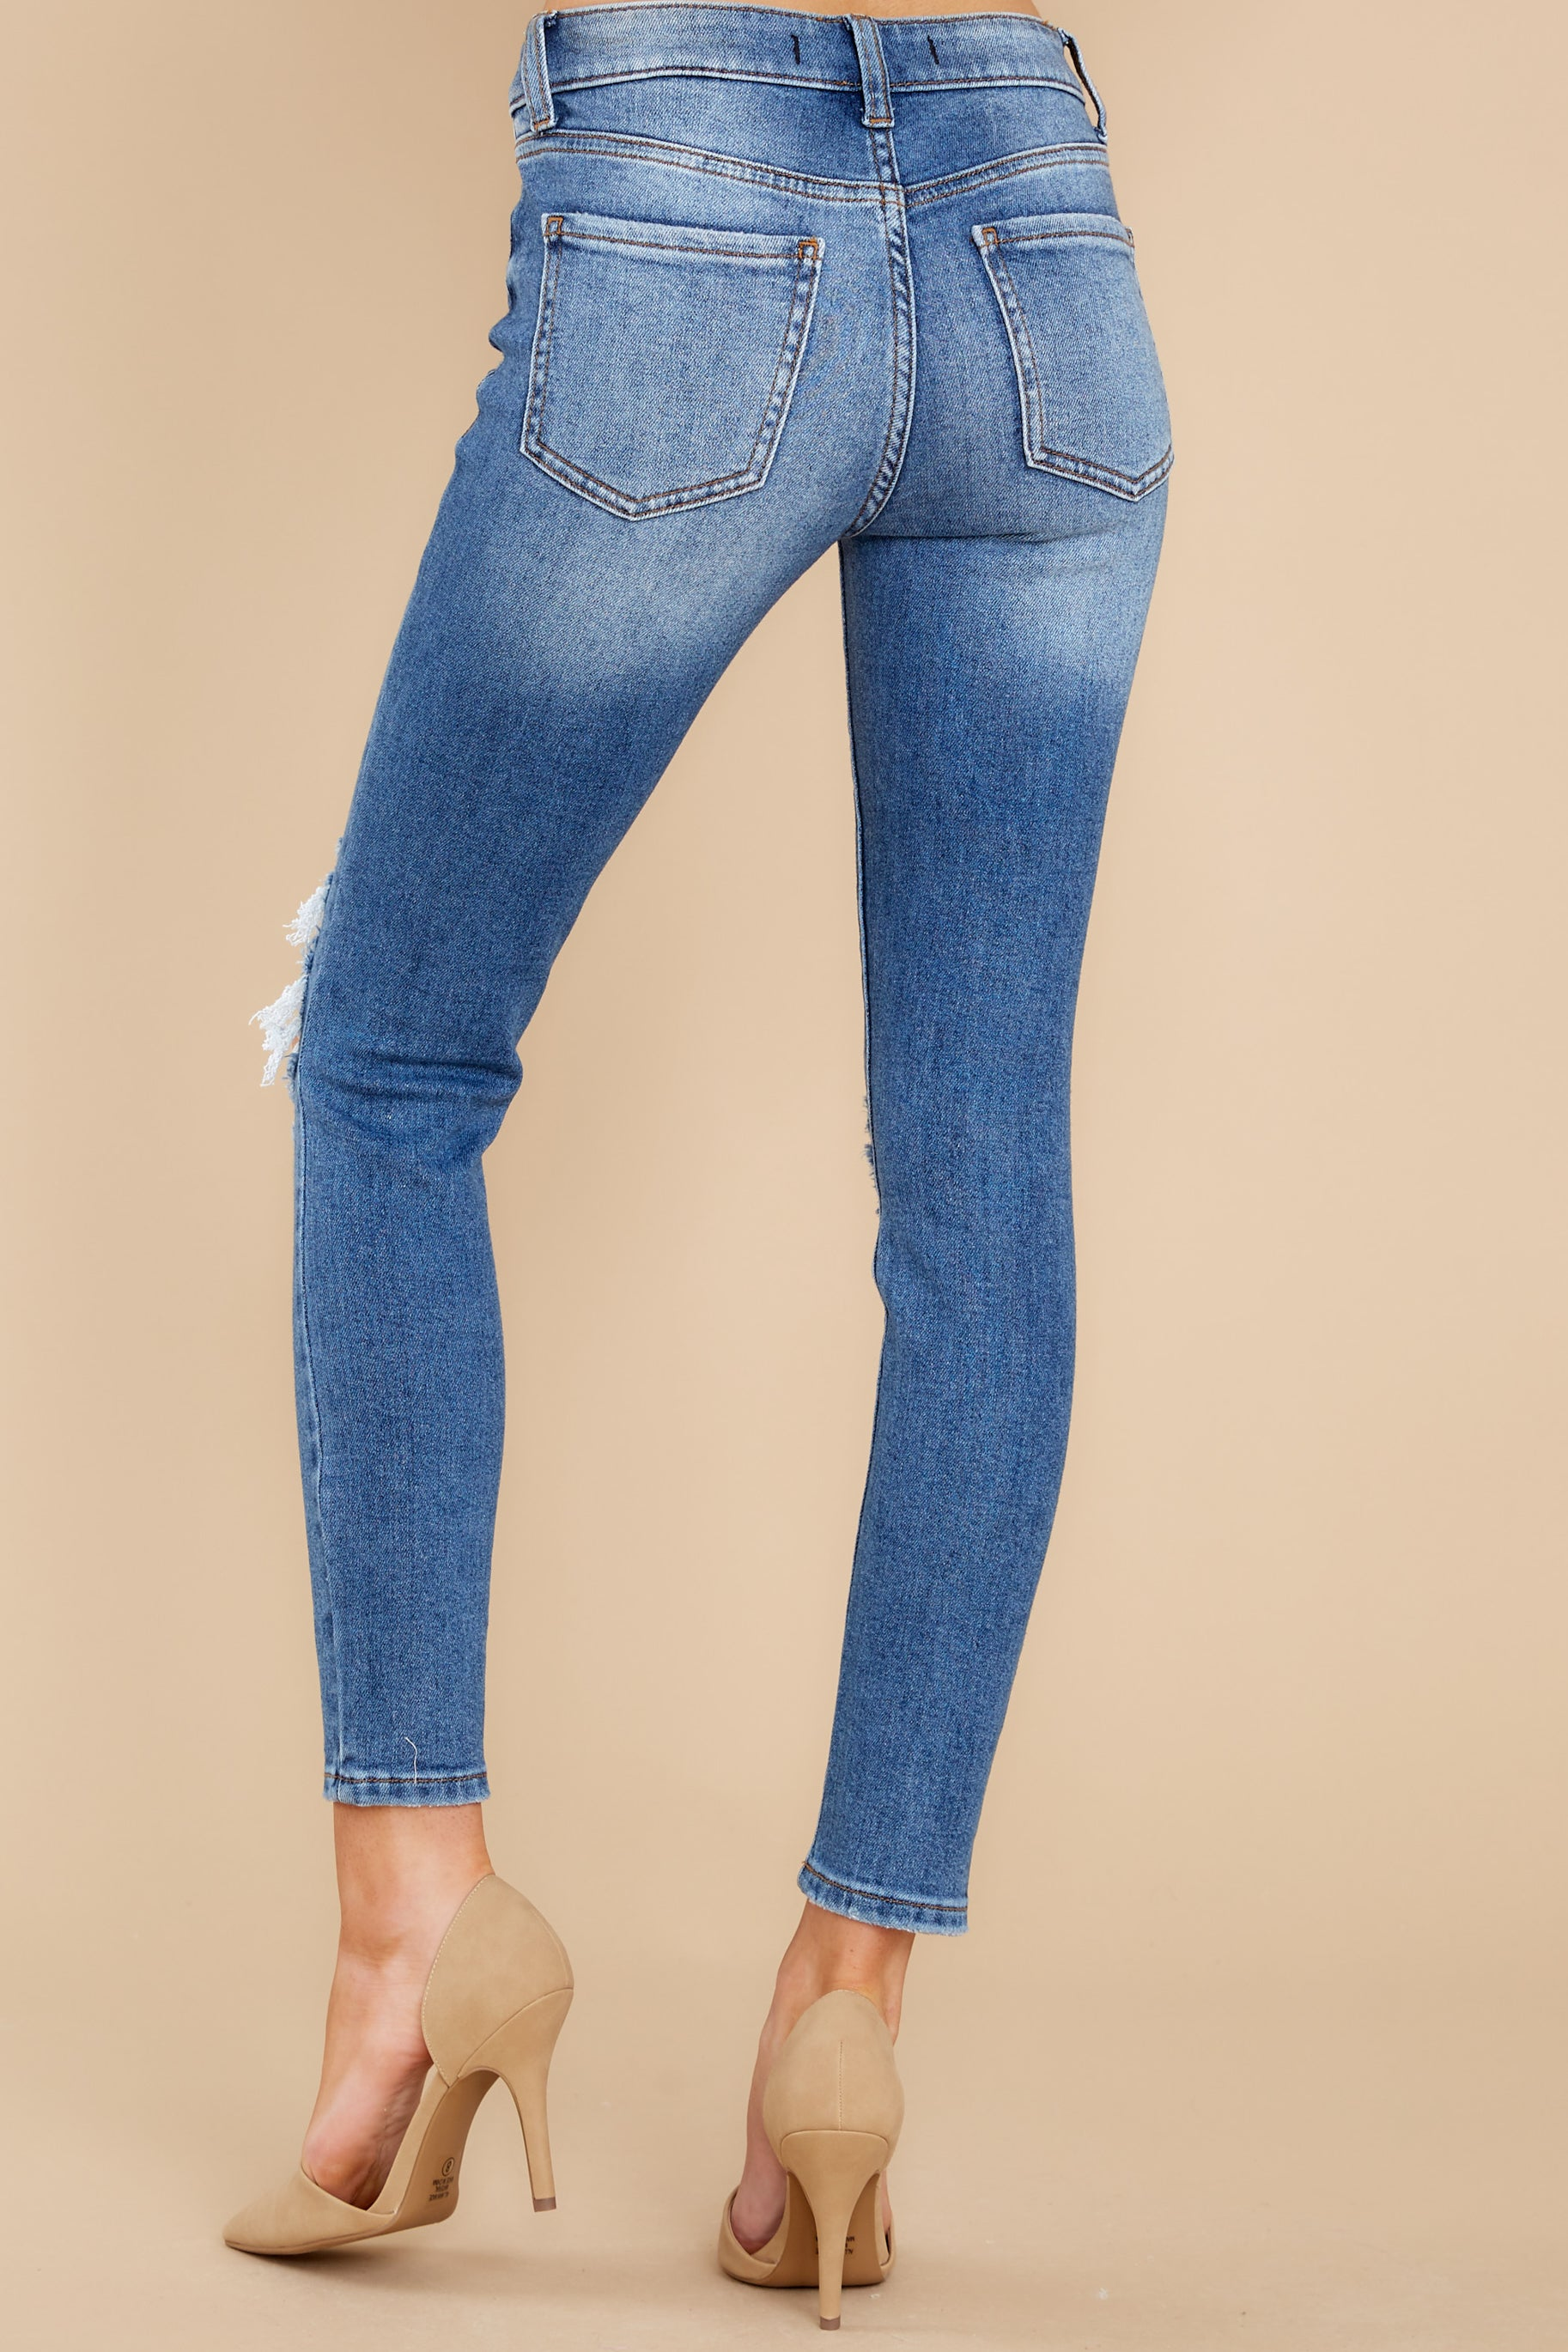 5 In Action Medium Wash Distressed Skinny Jeans at reddress.com